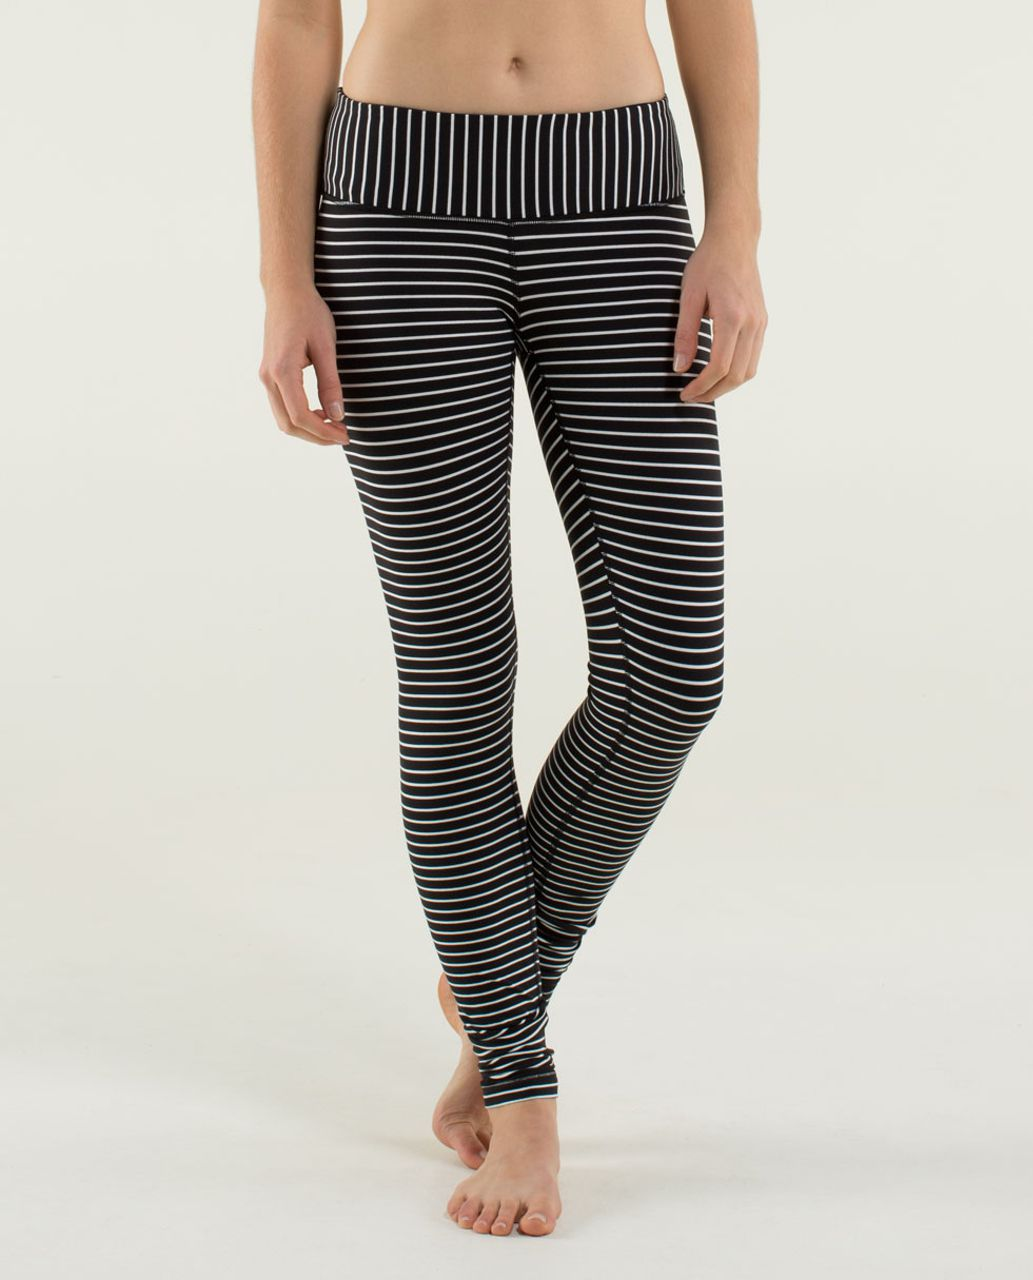 Lululemon Wunder Under Pant - Parallel Stripe Black White / Black